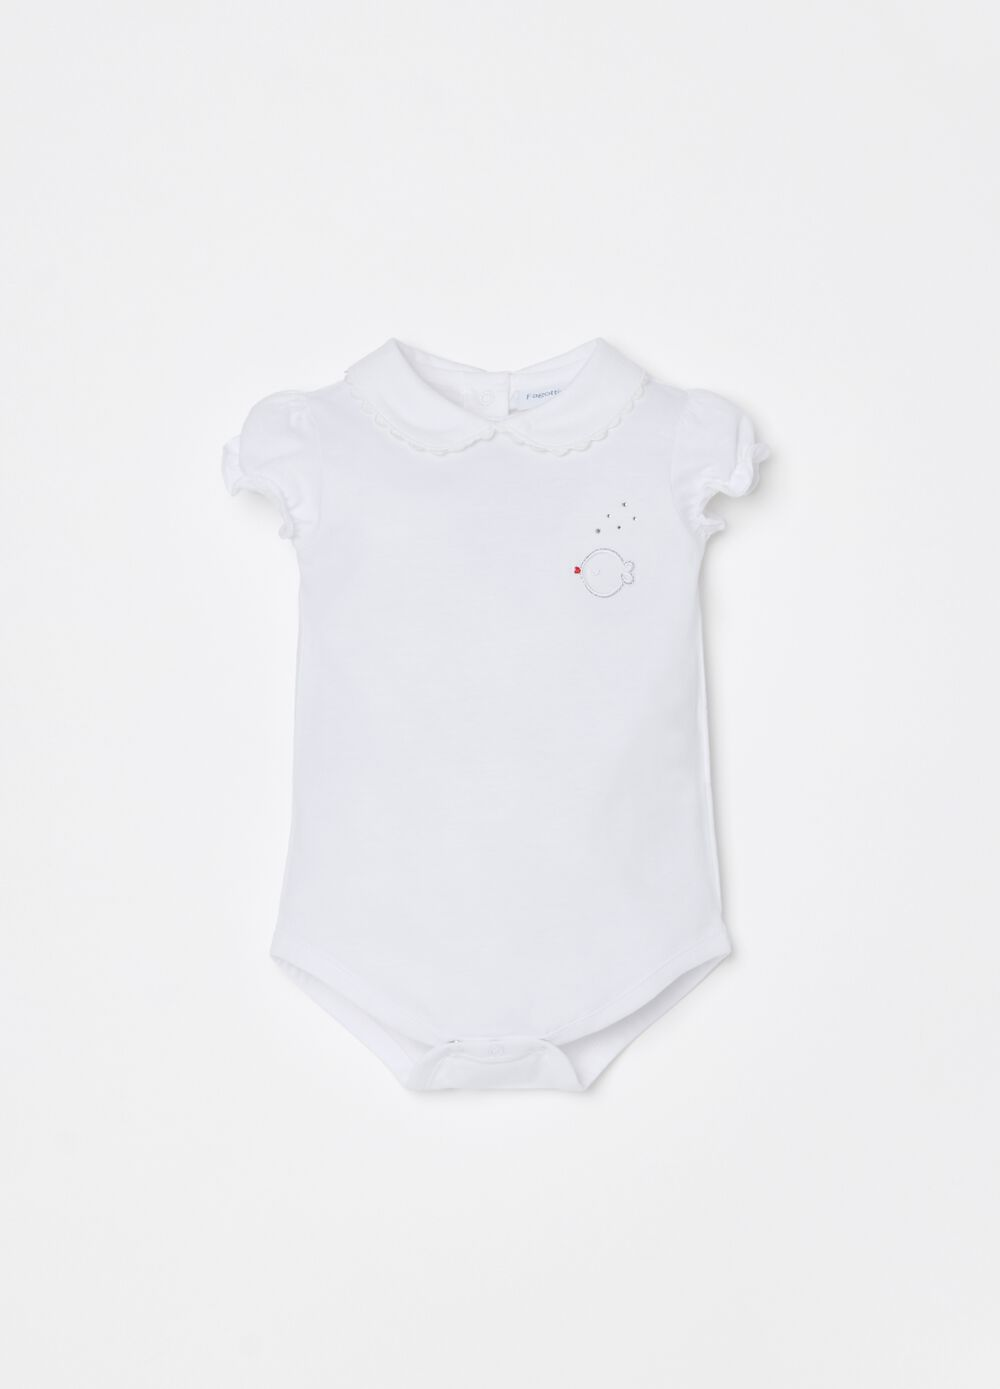 100% organic cotton bodysuit with fish embroidery